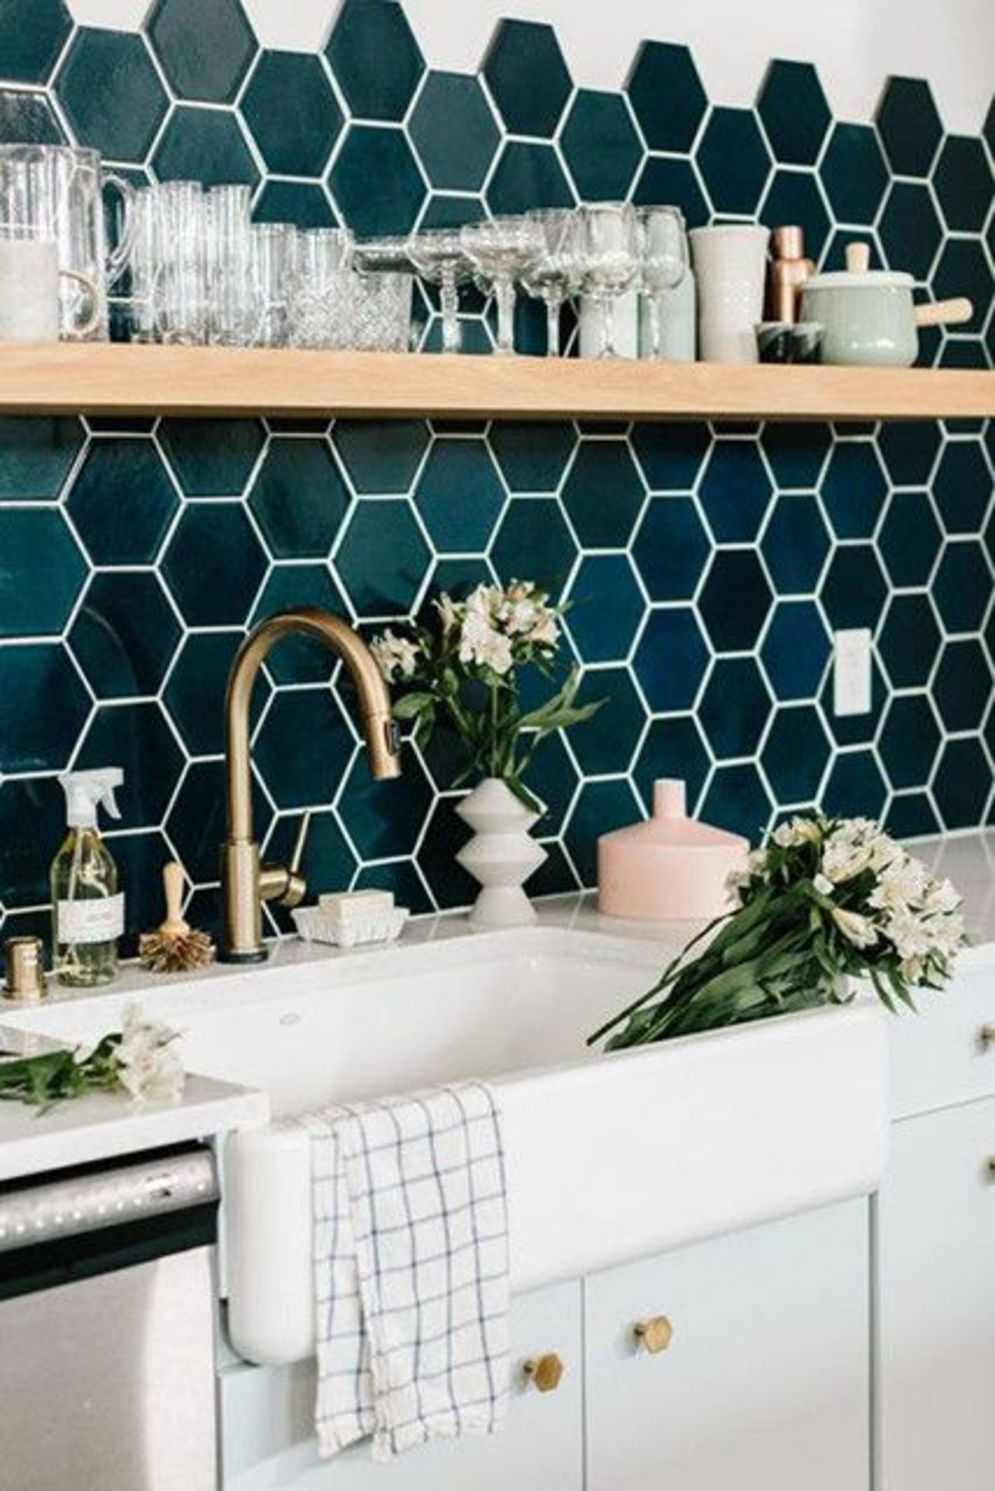 Beautiful kitchen backsplash designs giving special accents in the house Image 13